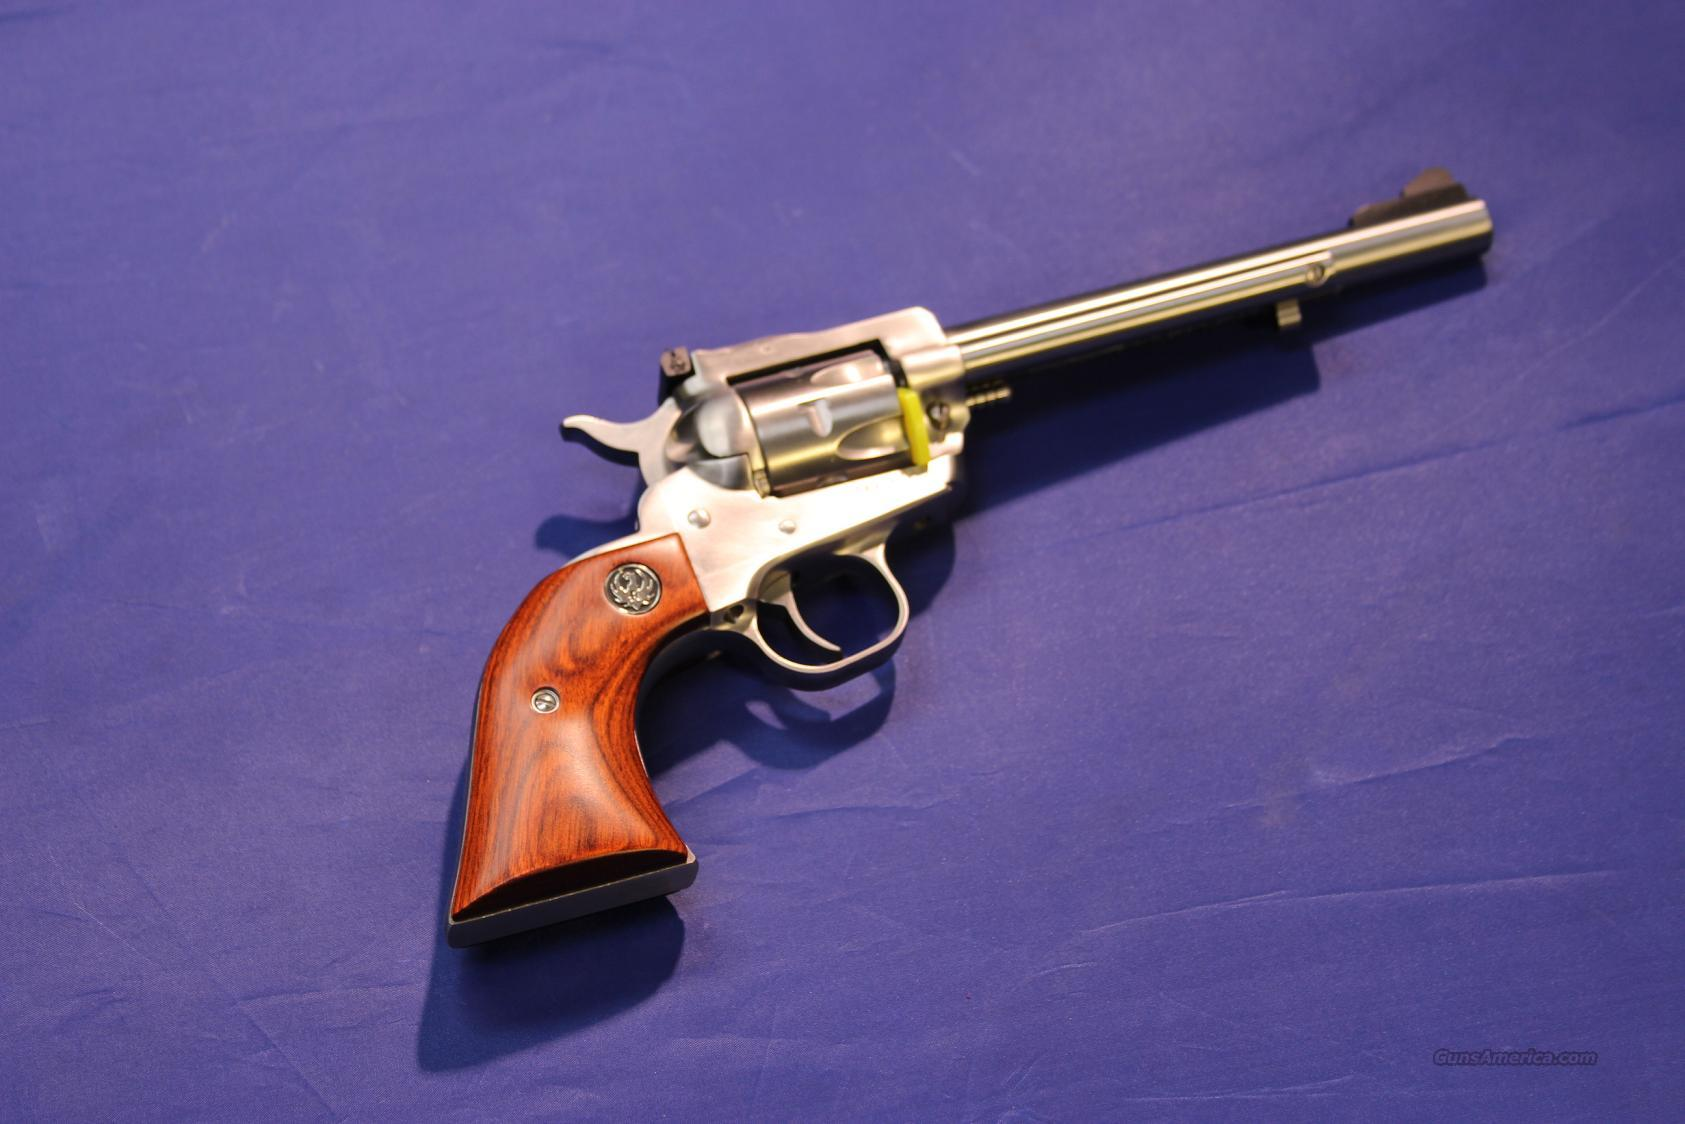 ***SOLD*** RUGER SINGLE SIX SS 22LR/22MAG - NEW!  Guns > Pistols > Ruger Single Action Revolvers > Single Six Type